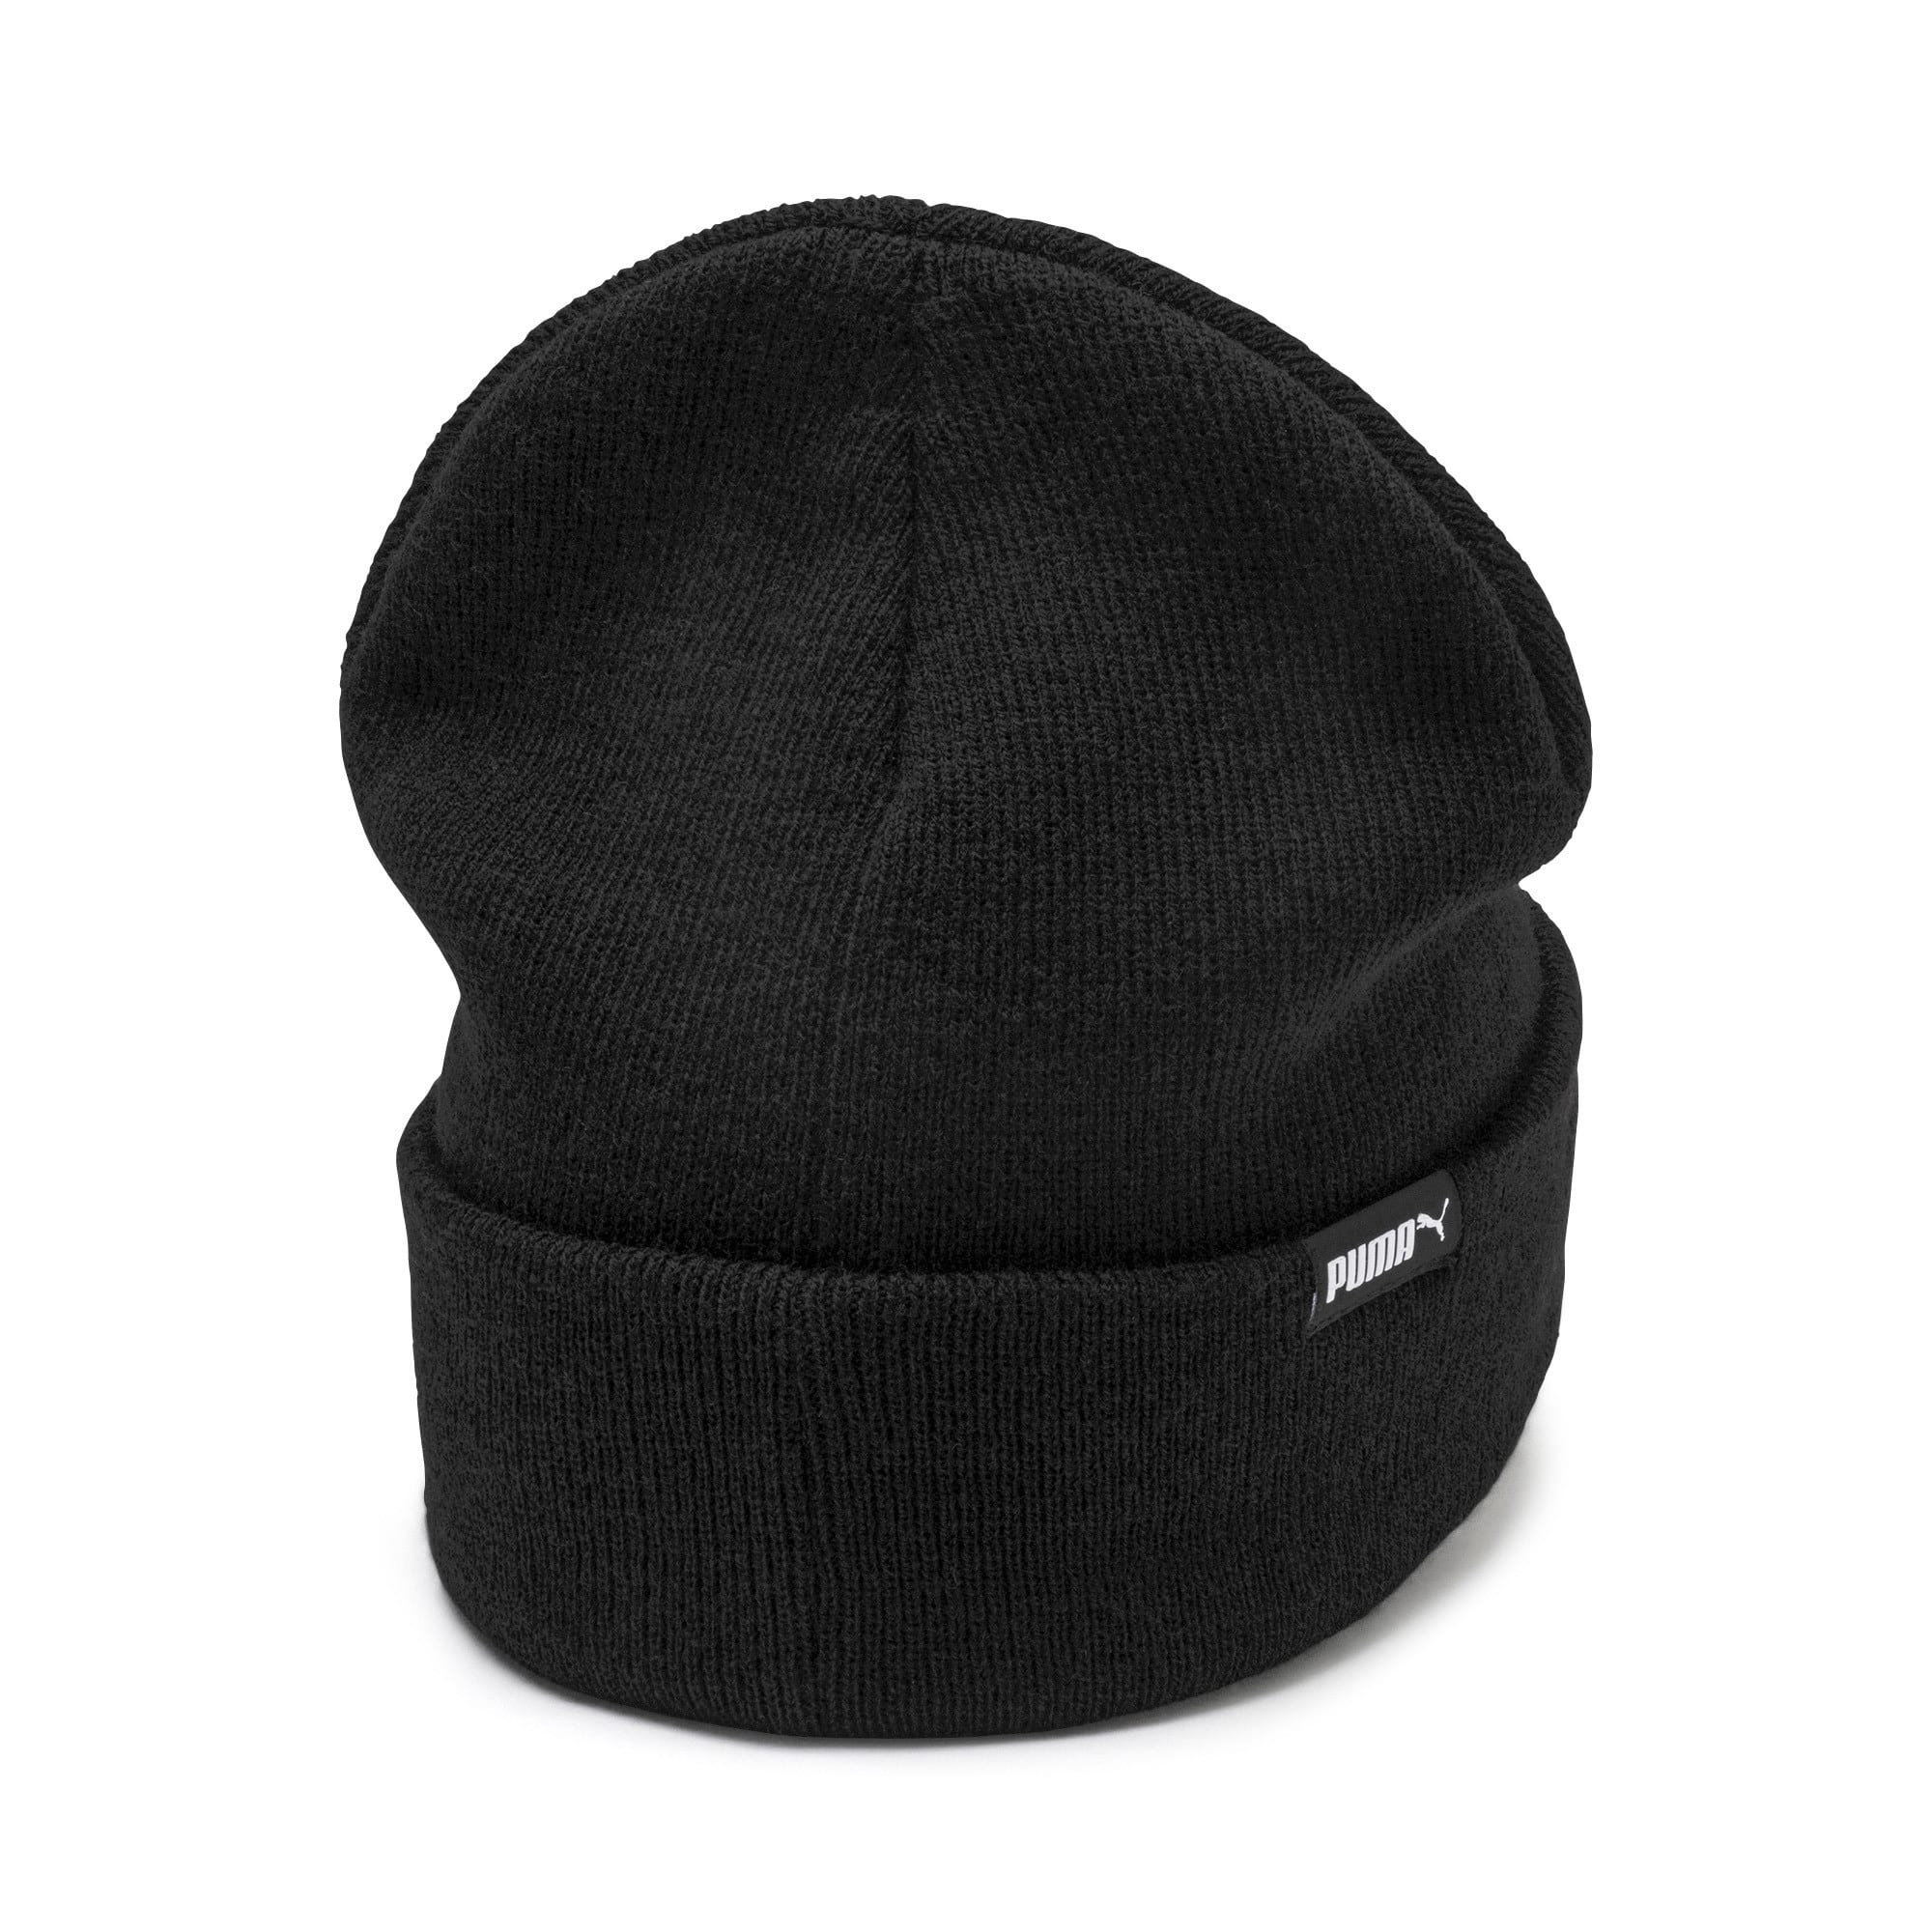 Thumbnail 3 of Archive Mid Fit Beanie, Puma Black, medium